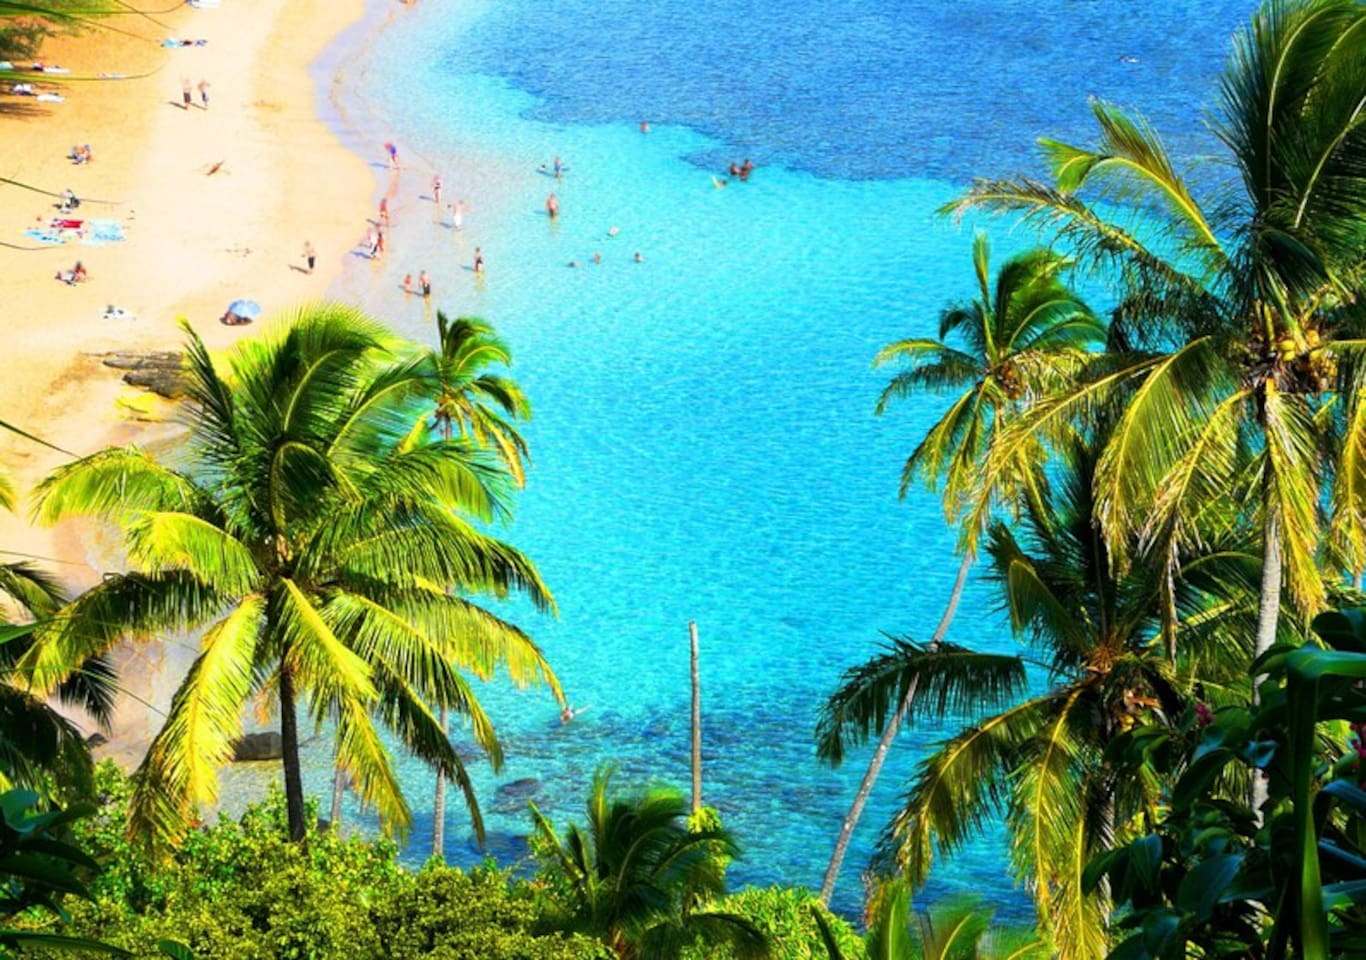 Dip your toes in the golden sands of the beautiful Kamaole beach across from your condo!